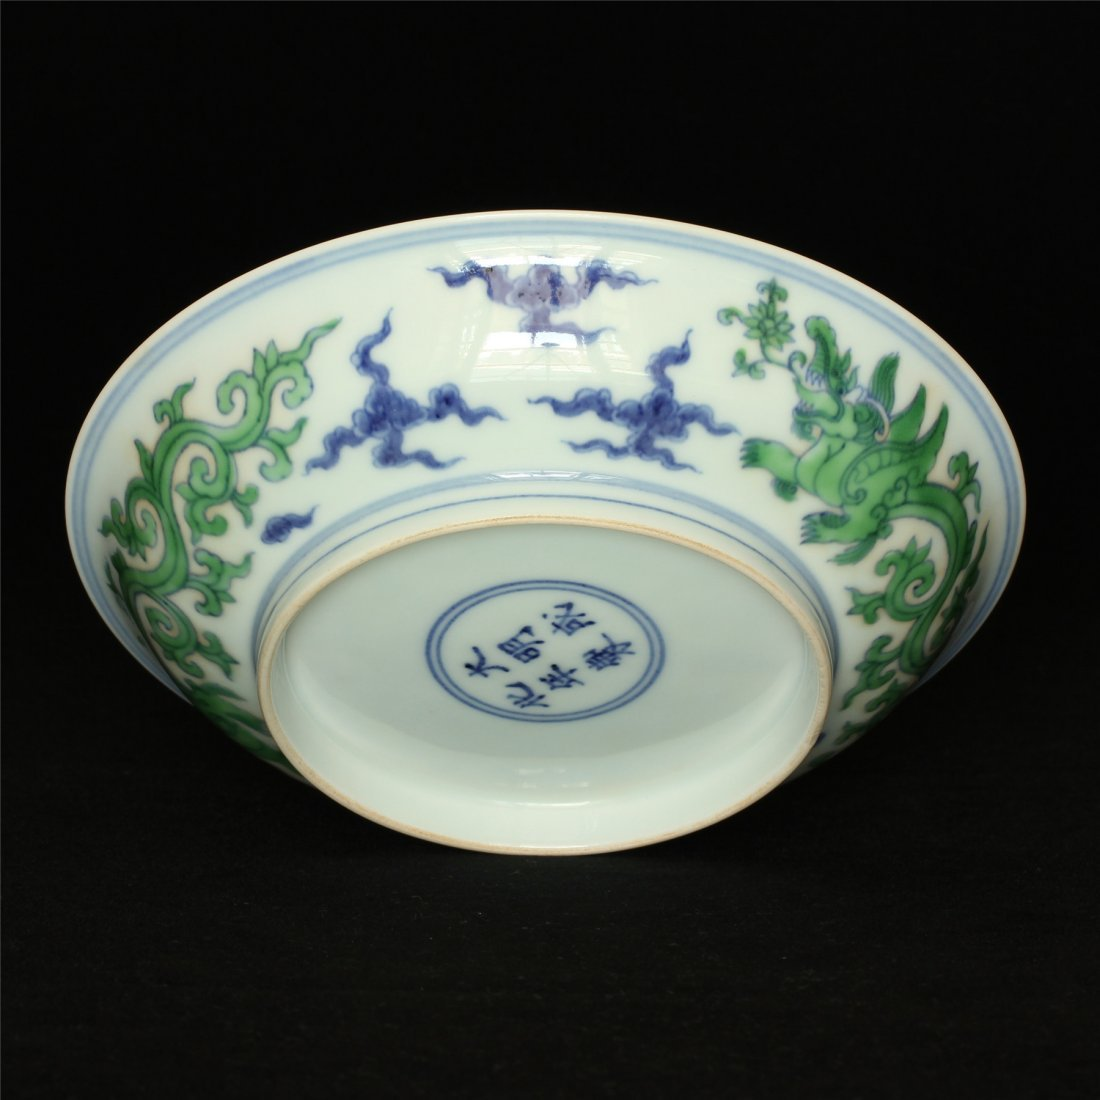 Doucai porcelain plate of Ming Dynasty ChengHua mark. - 10